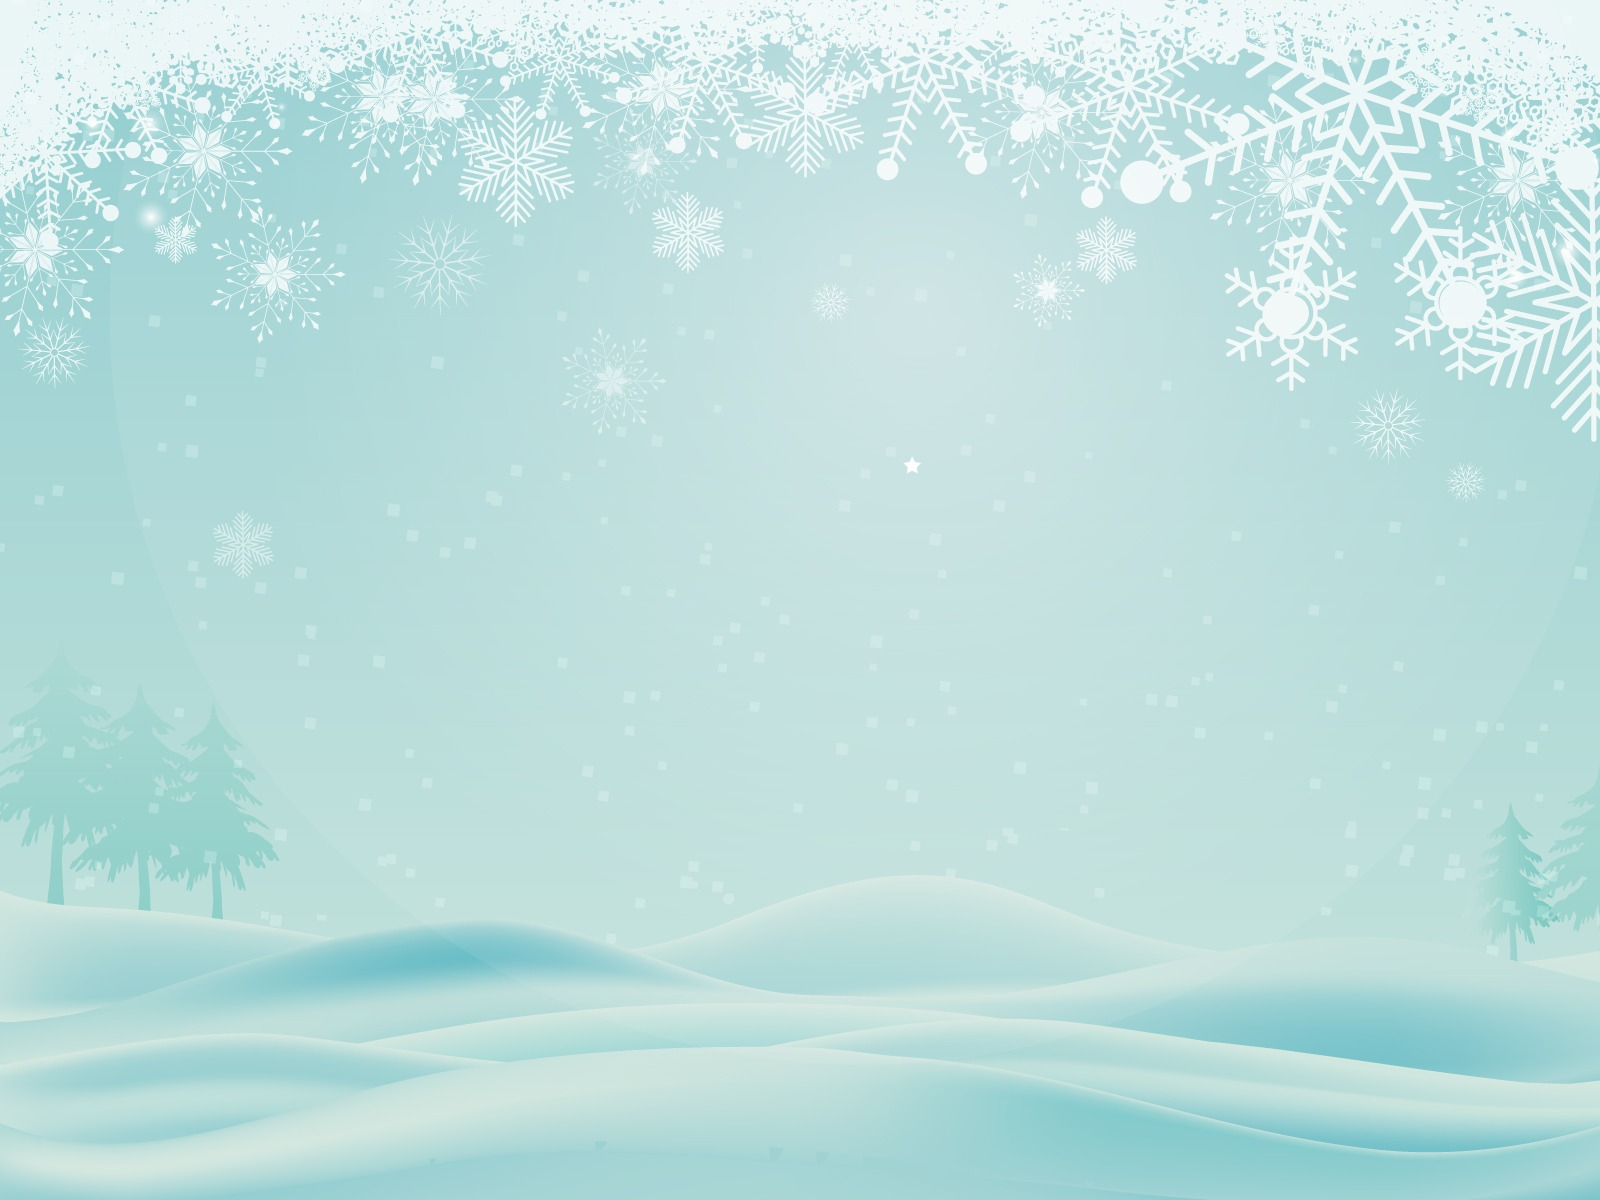 Winter Wonderland Wallpapers - Full HD wallpaper search